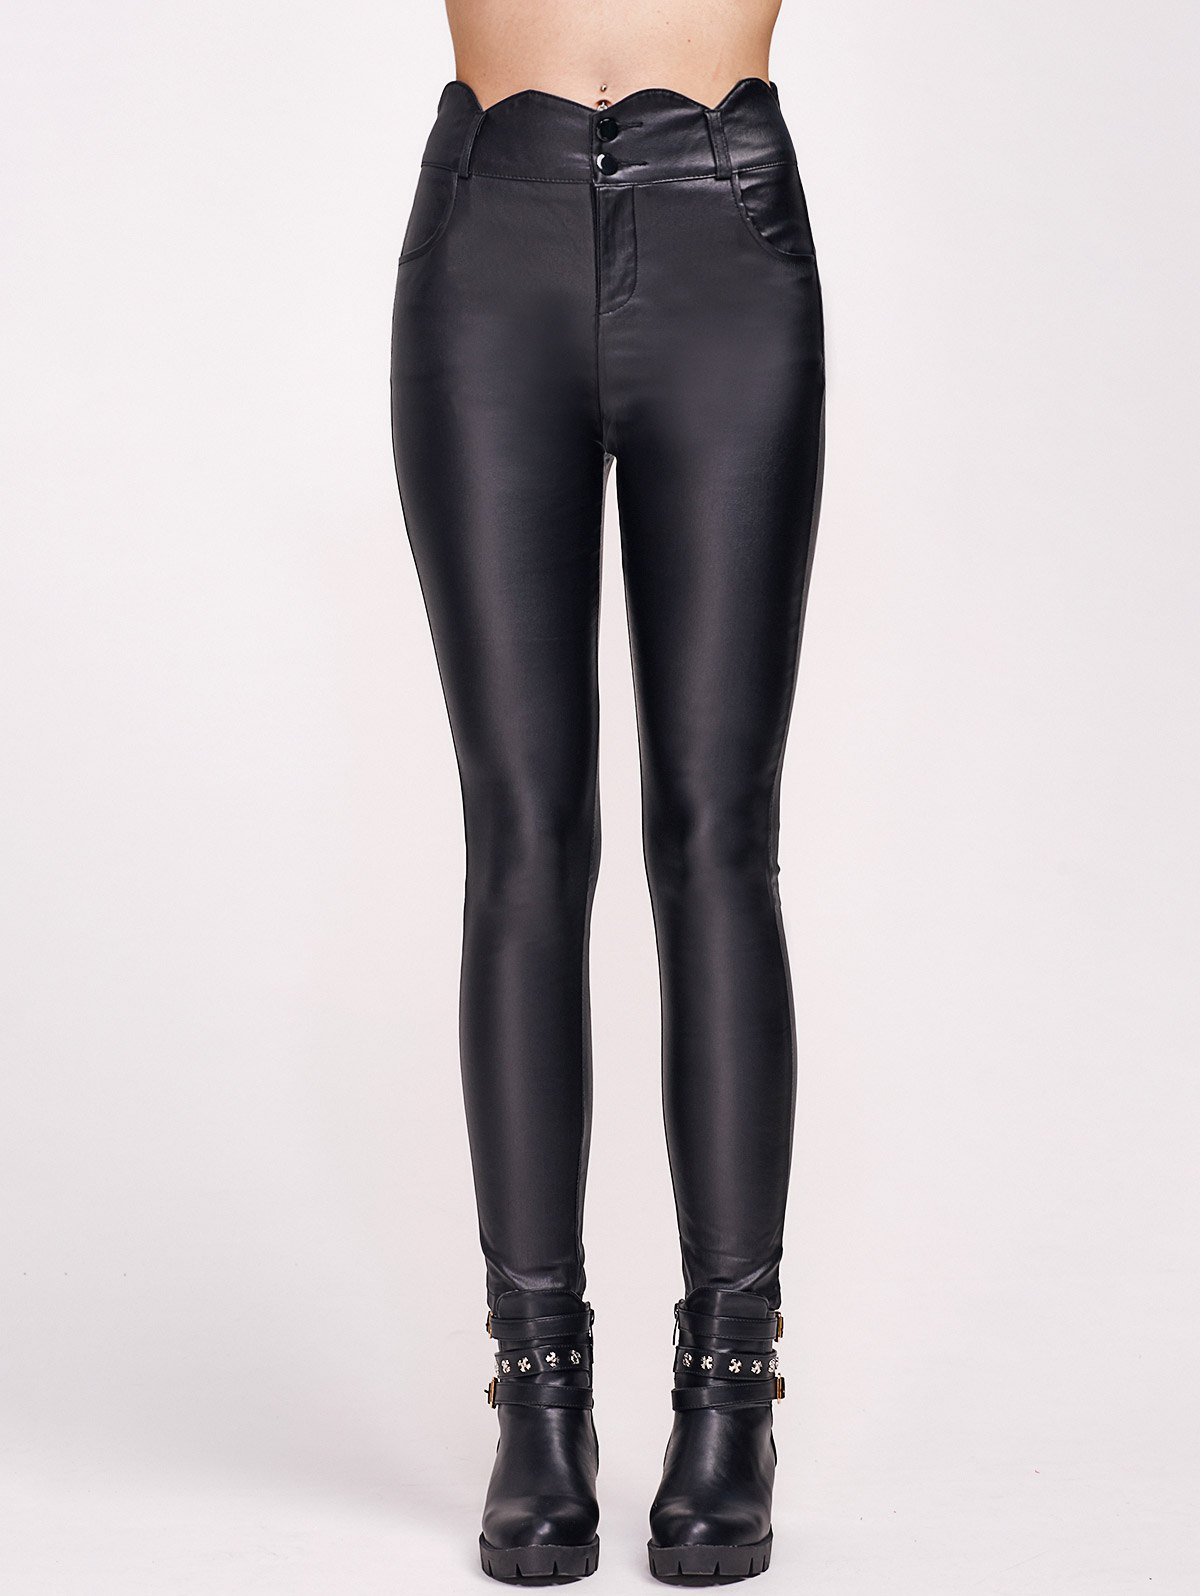 Affordable Scalloped Faux Leather High Waist Pants